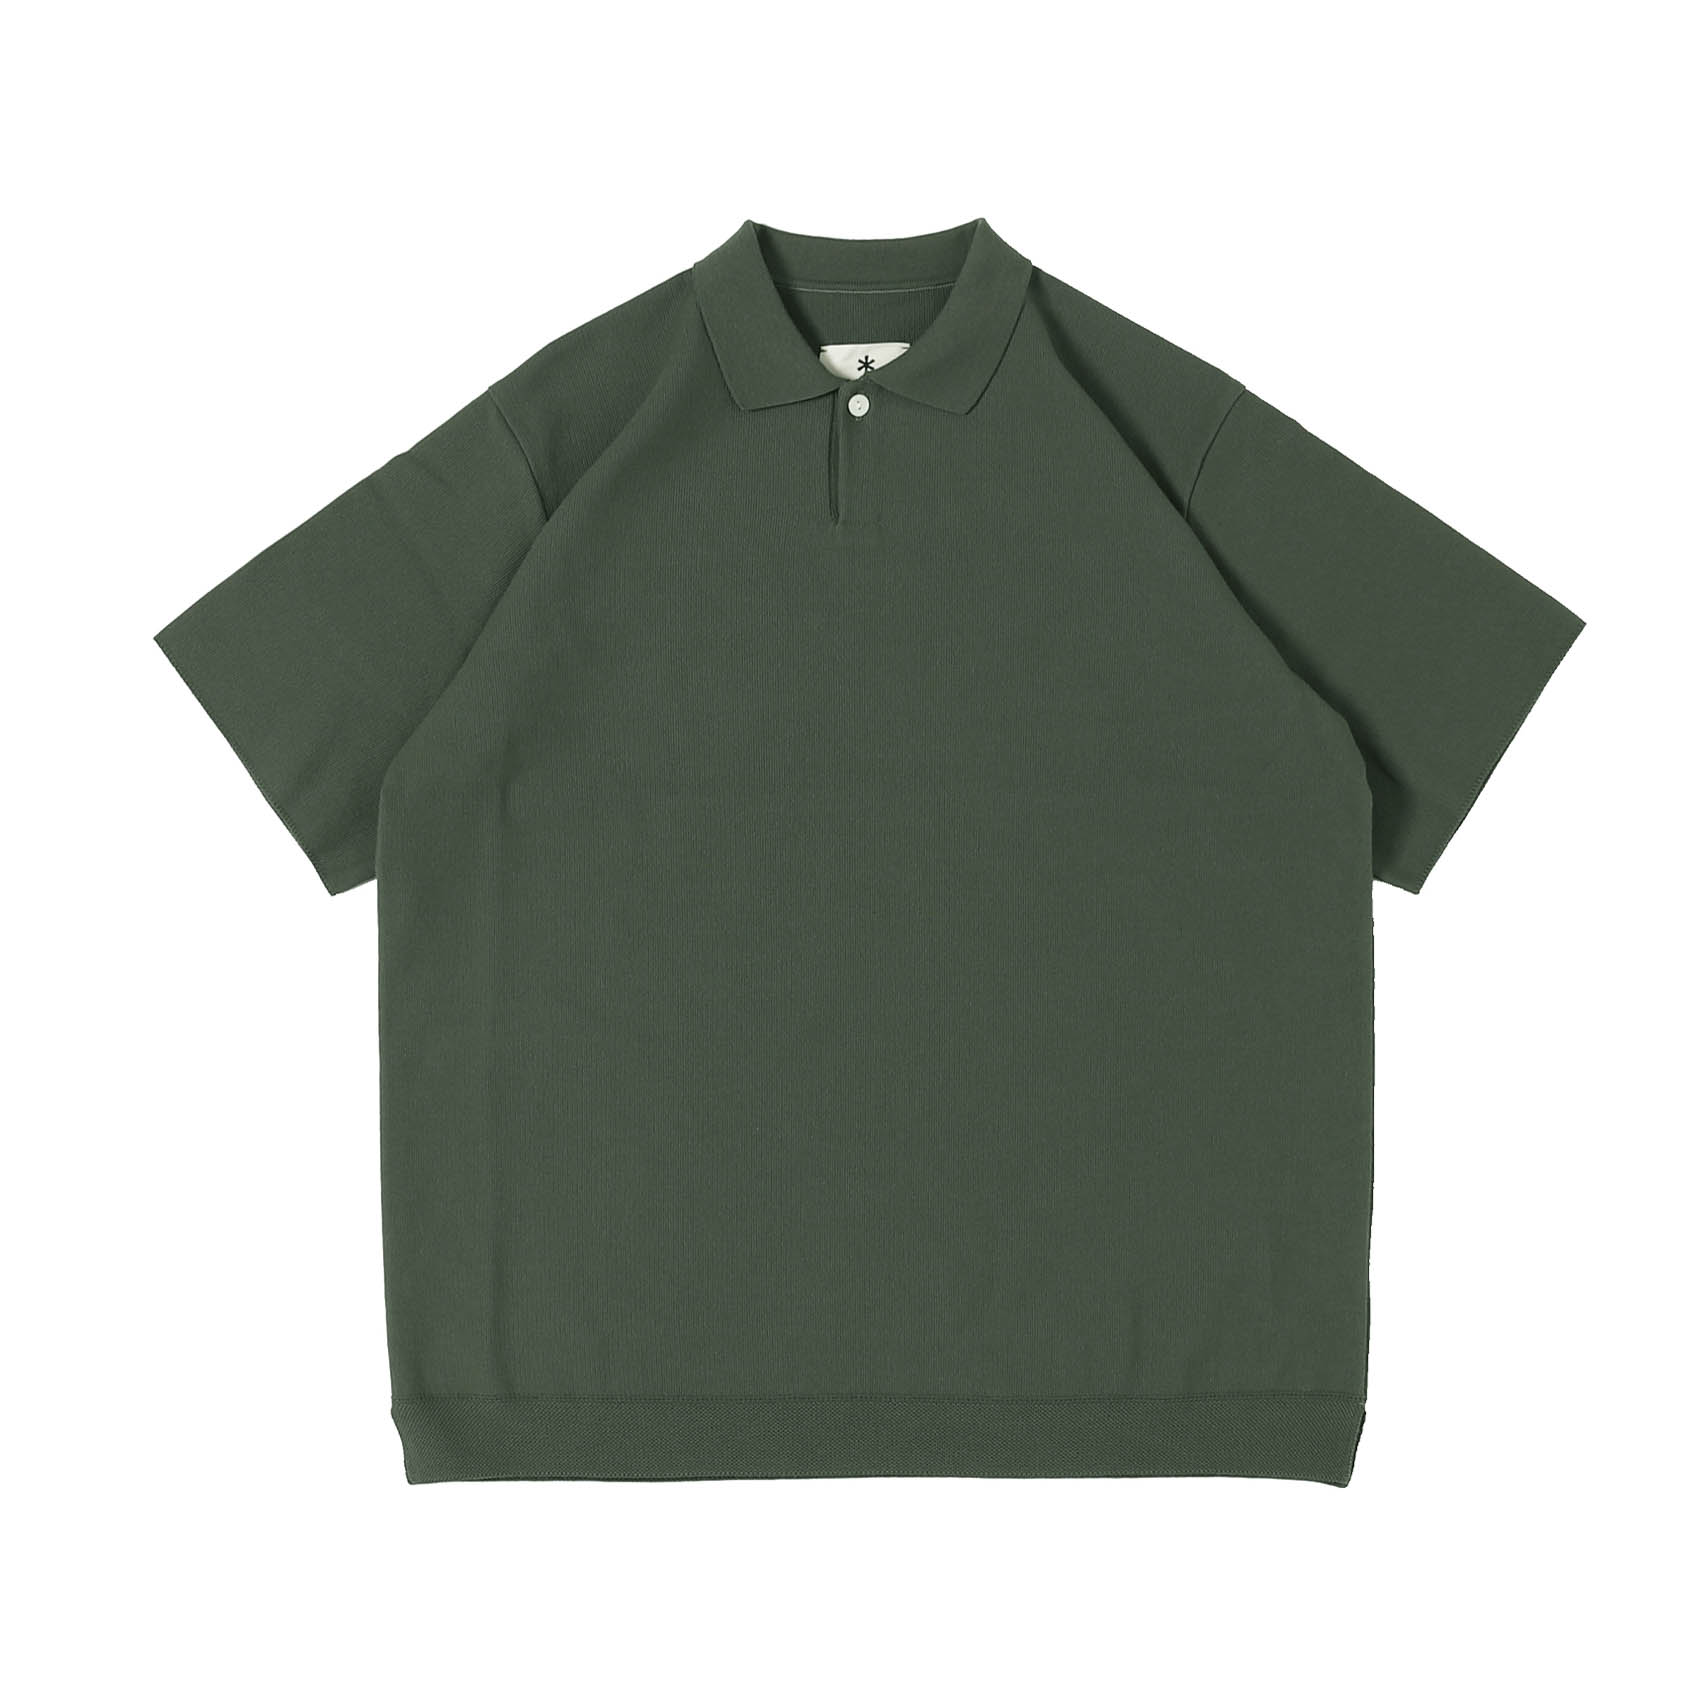 CO/PE DRY POLO SHIRT - KHAKI